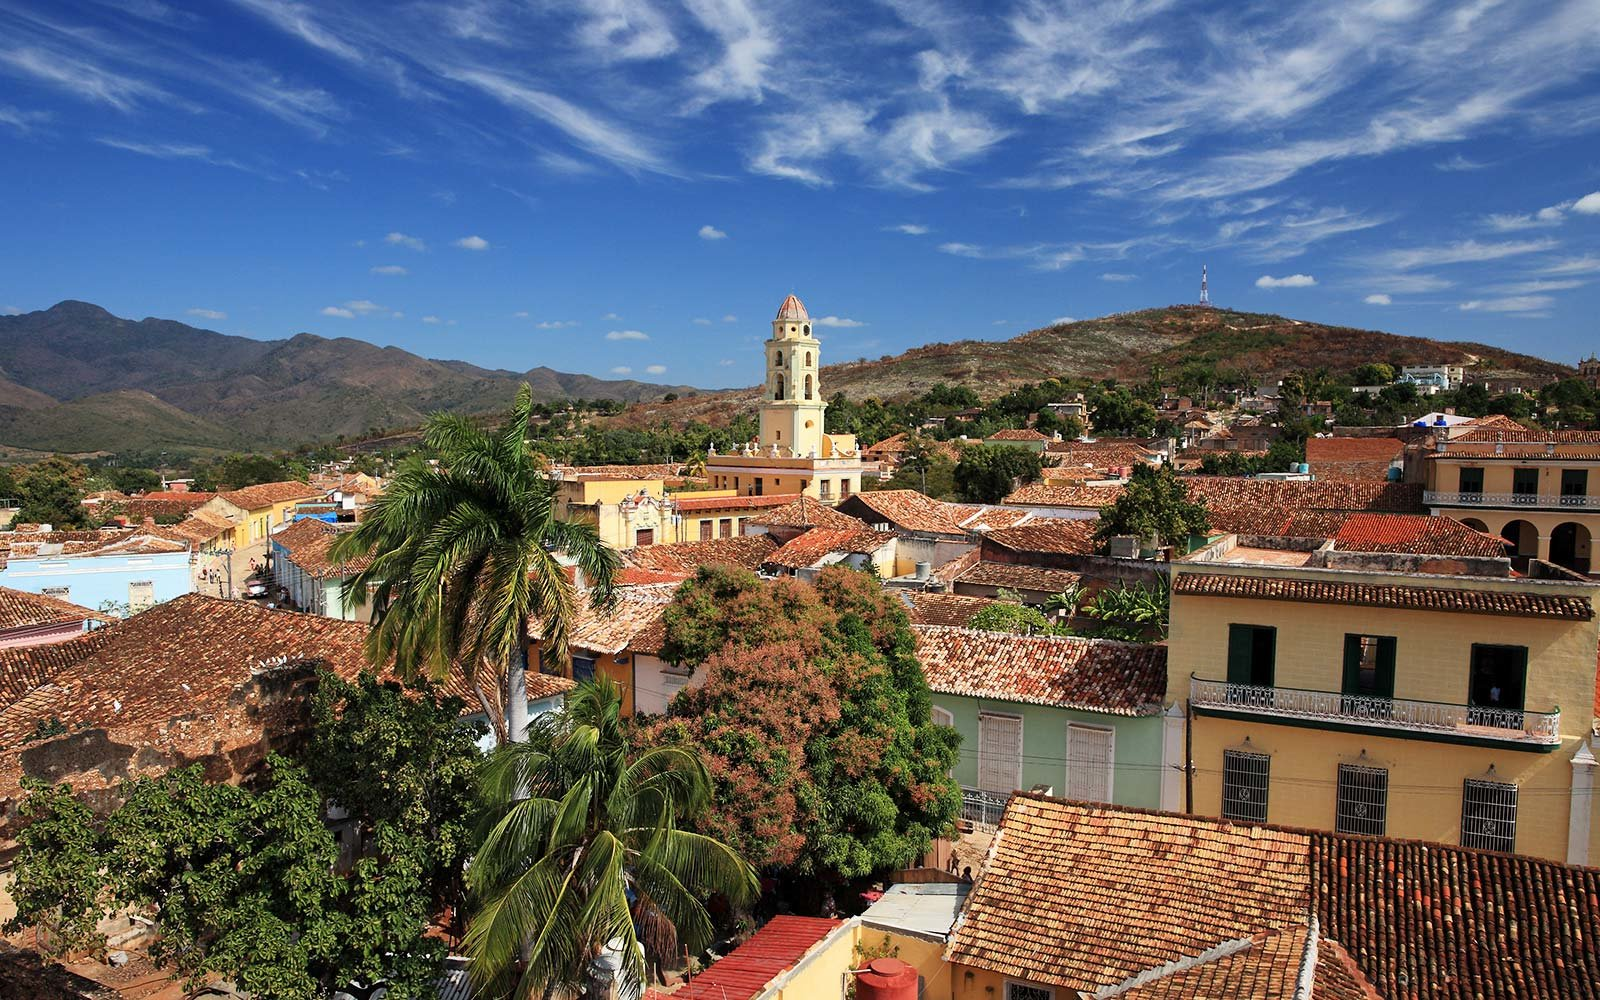 Church and Convent of San Francisco in Trinidad Cuba